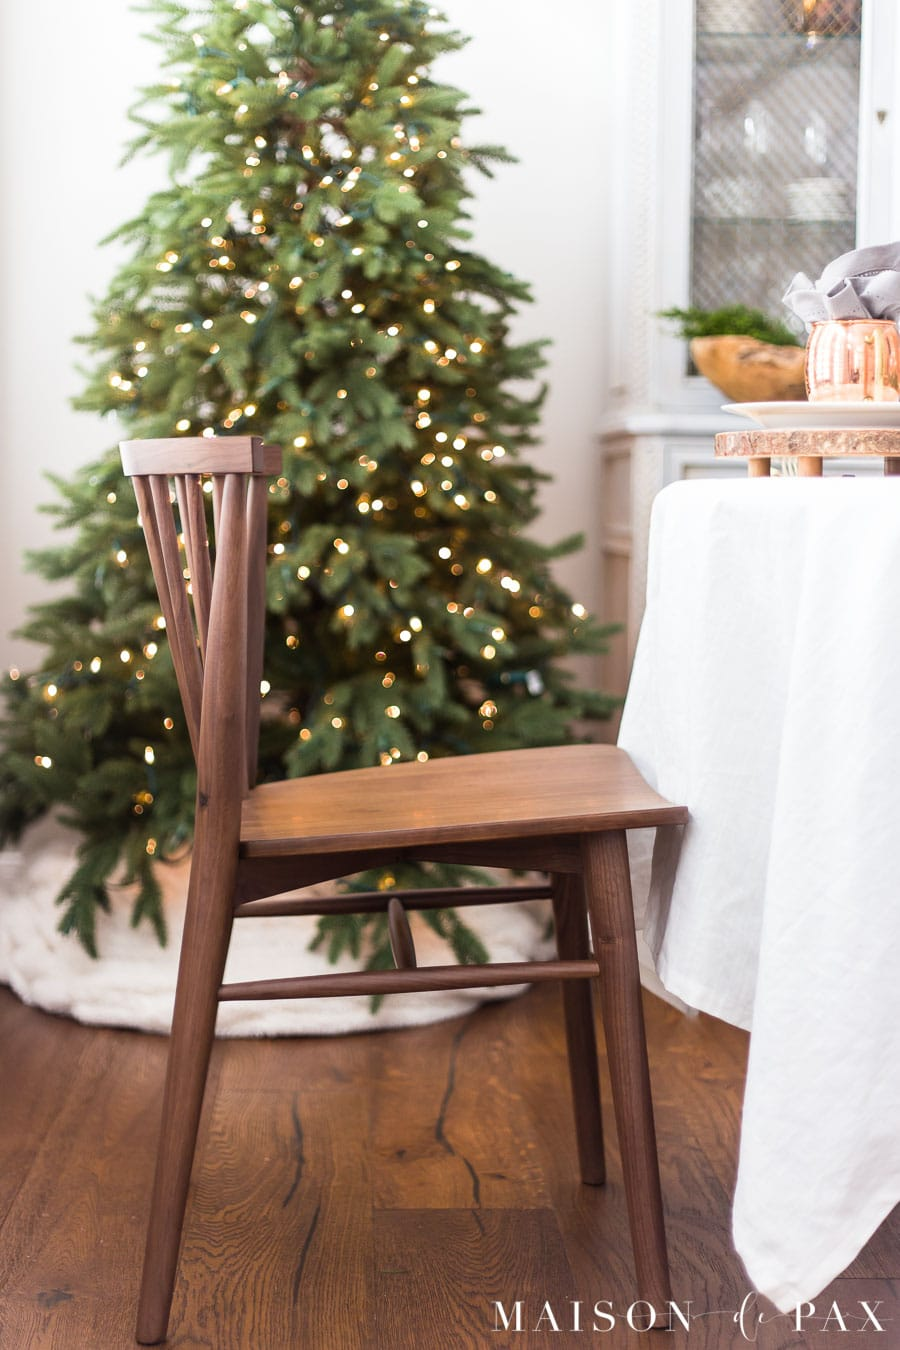 walnut modern farmhouse dining chair in front of green Christmas tree with lights